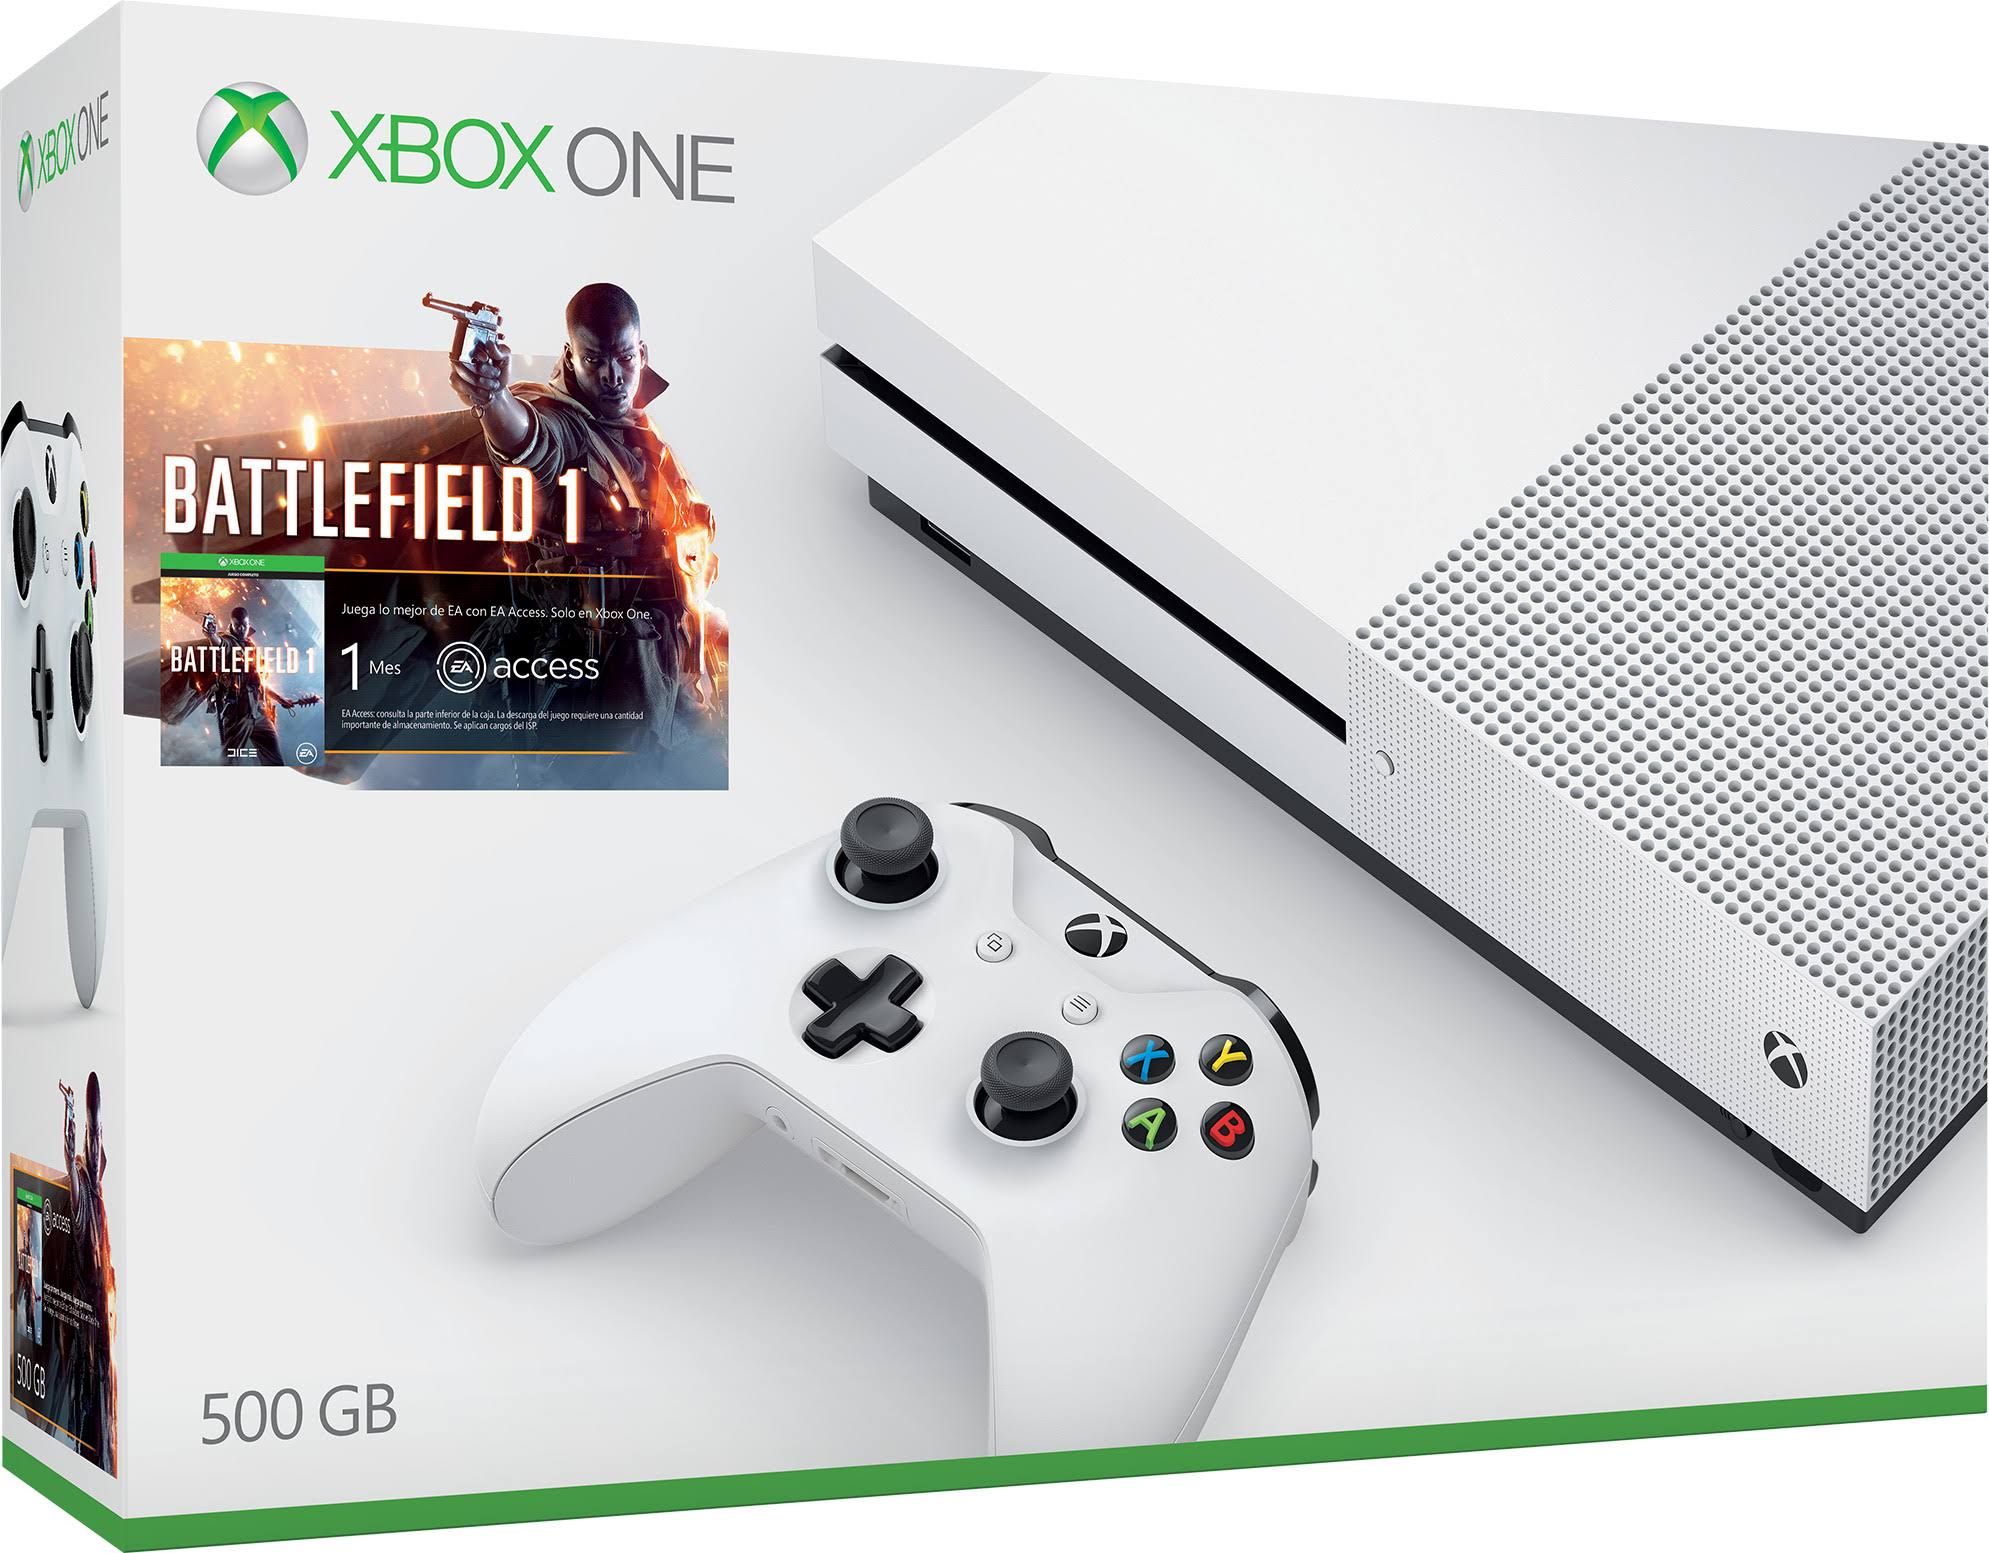 Microsoft Xbox One S Battlefield 1 Bundle - 500gb